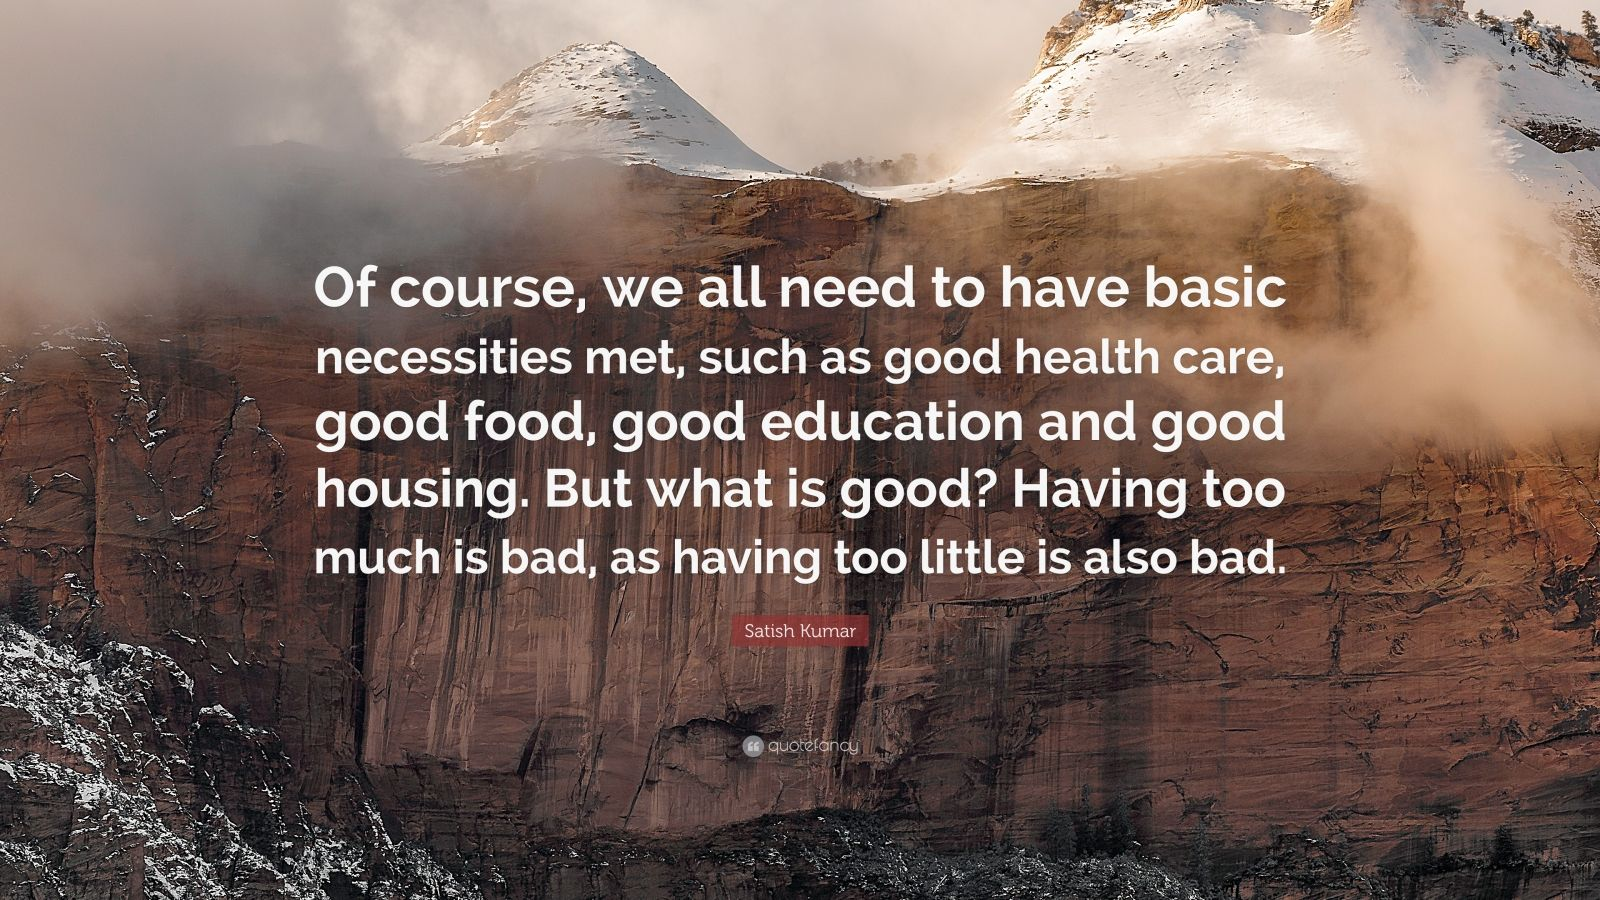 "Satish Kumar Quote: ""Of course, we all need to have basic necessities met, such as good health care, good food, good education and good housing. But what is good? Having too much is bad, as having too little is also bad."""